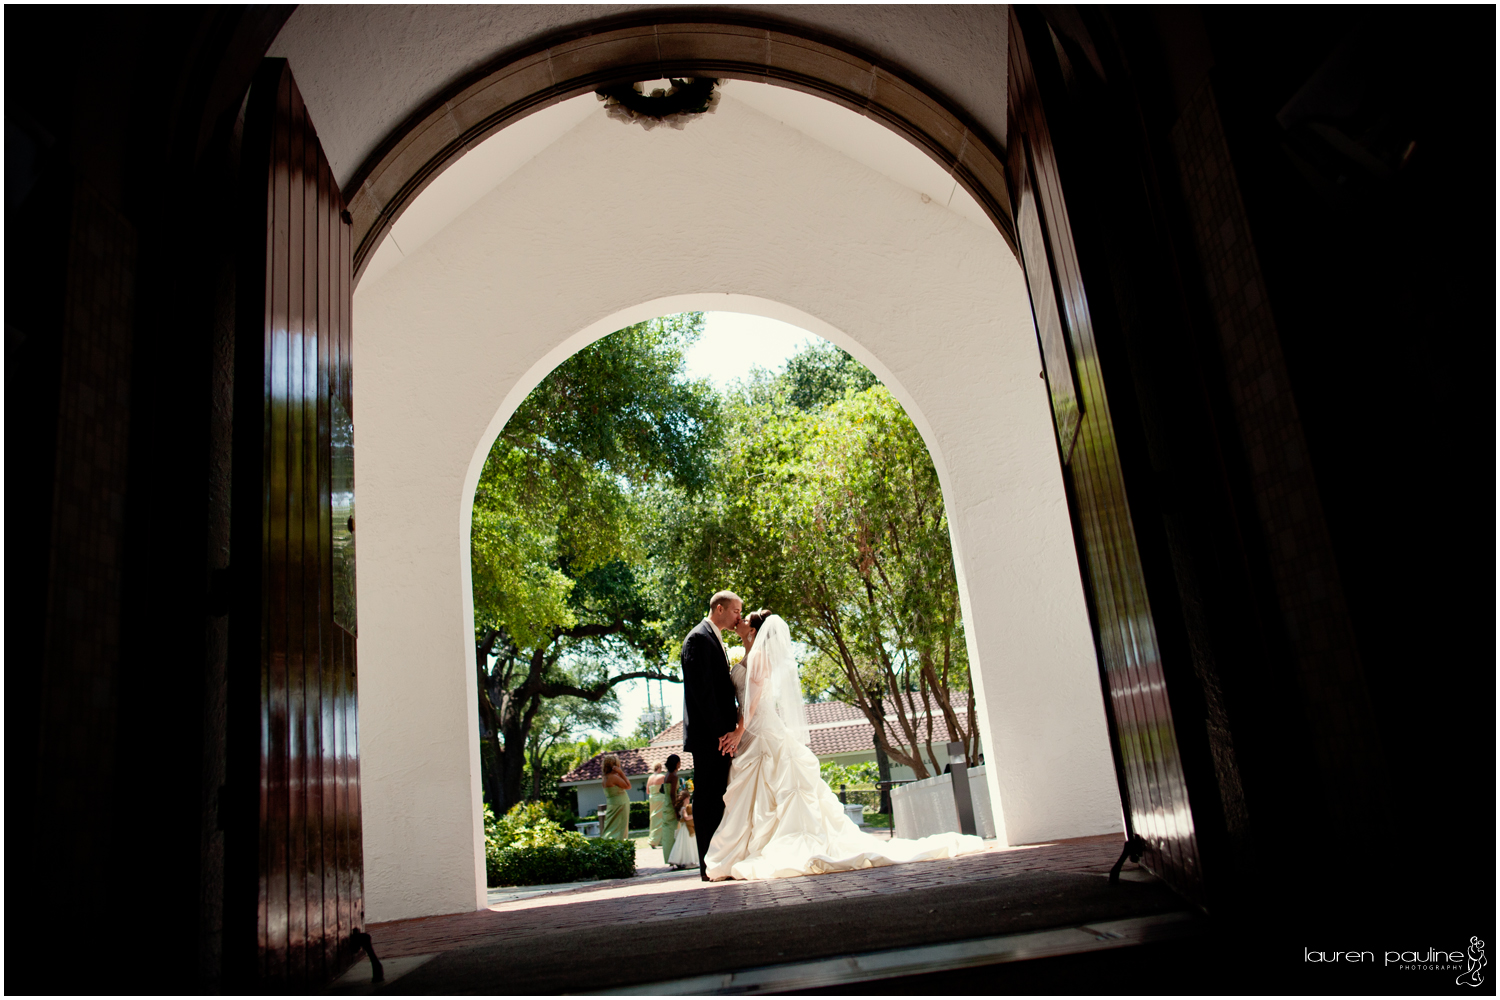 Wedding Photographer in Clearwater, FL